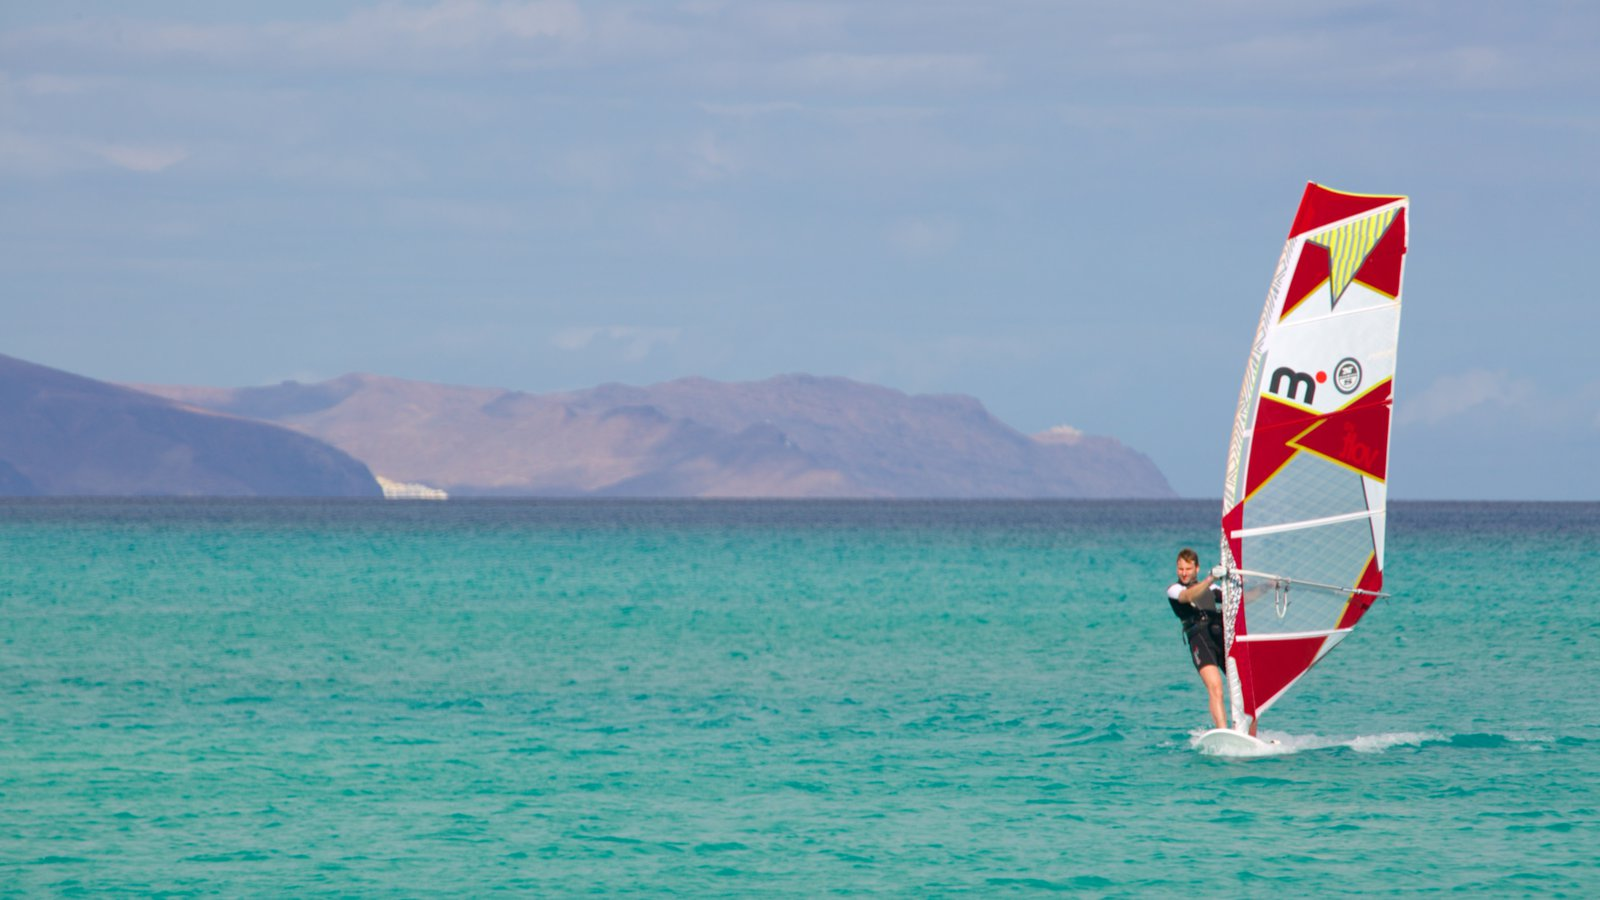 Sotavento de Jandia Beach featuring windsurfing and general coastal views as well as an individual male